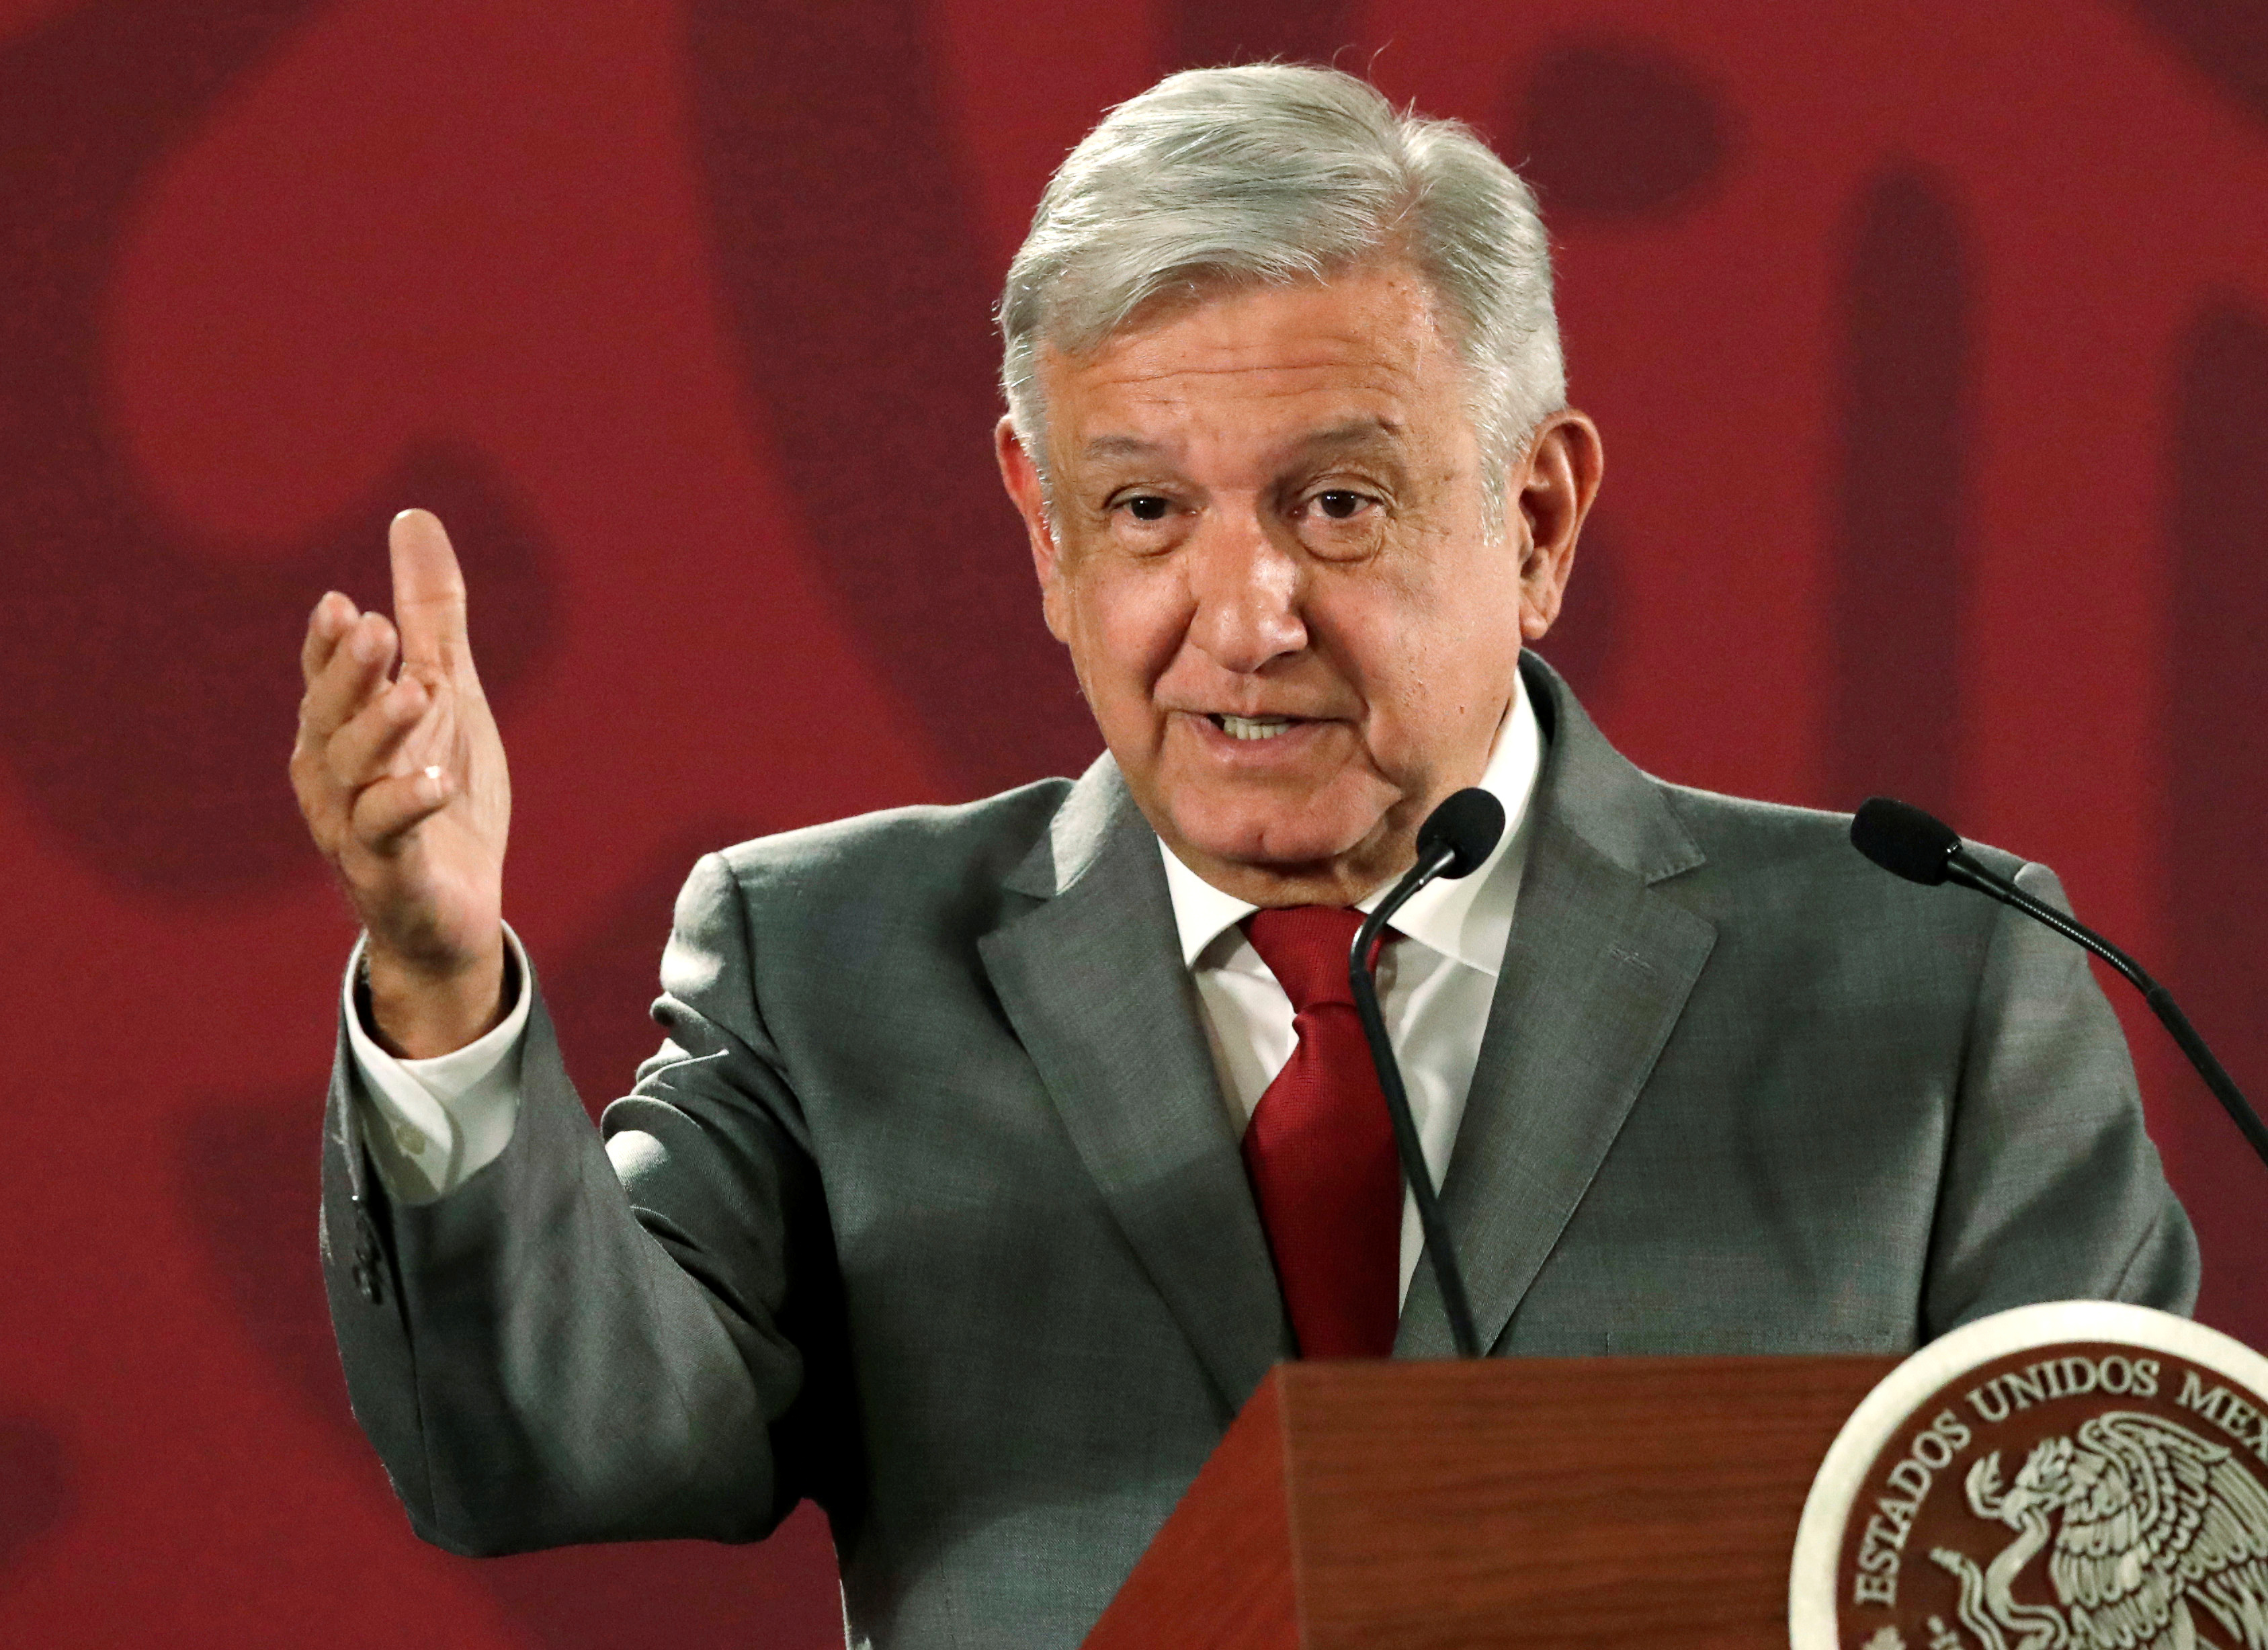 Mexico's President Andres Manuel Lopez Obrador speaks a news conference at the National Palace in Mexico City, May 31, 2019.